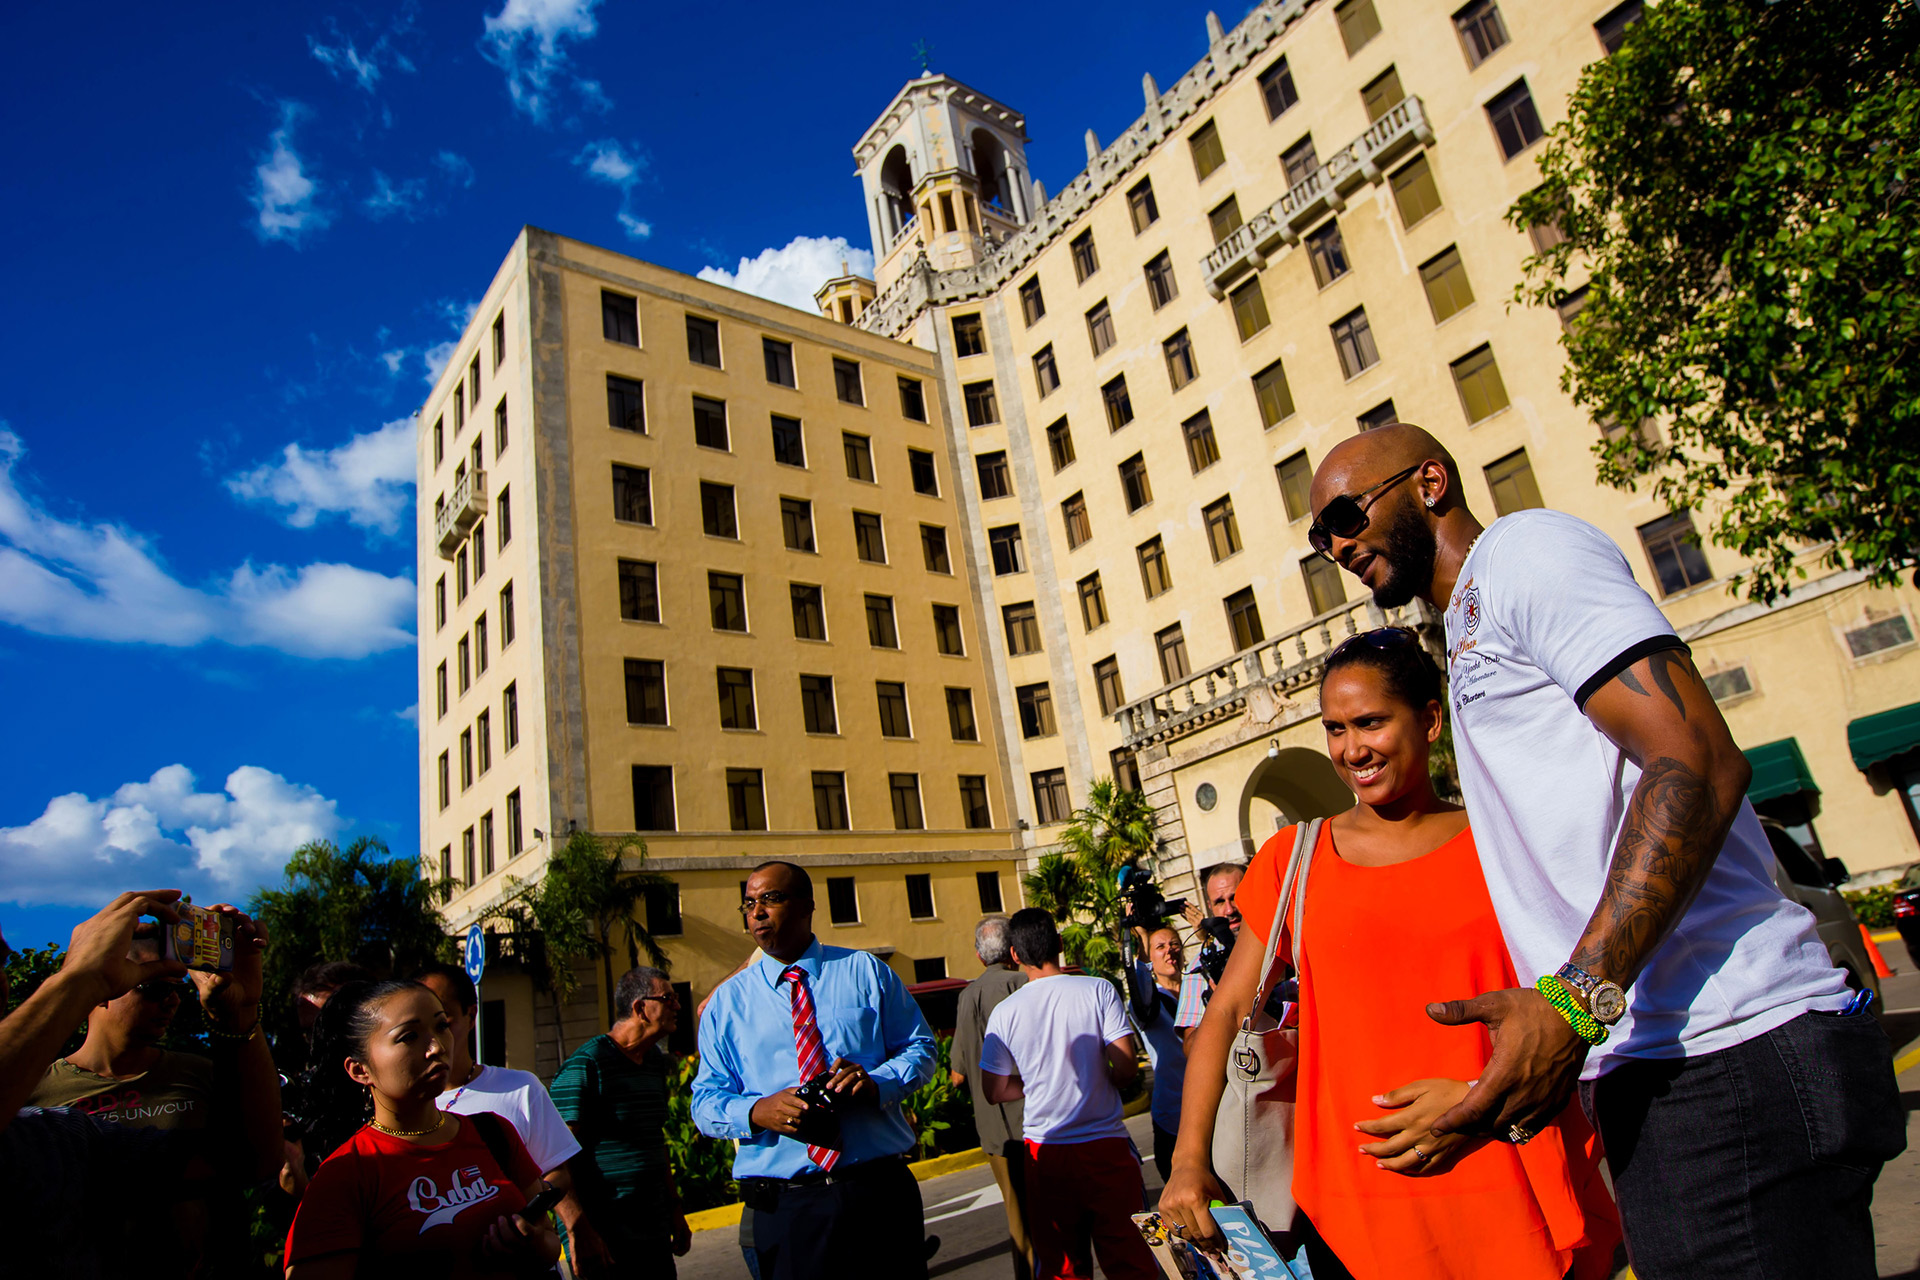 Free agent shortstop Alexei Ramirez meets with fans outside The Hotel Nacional.